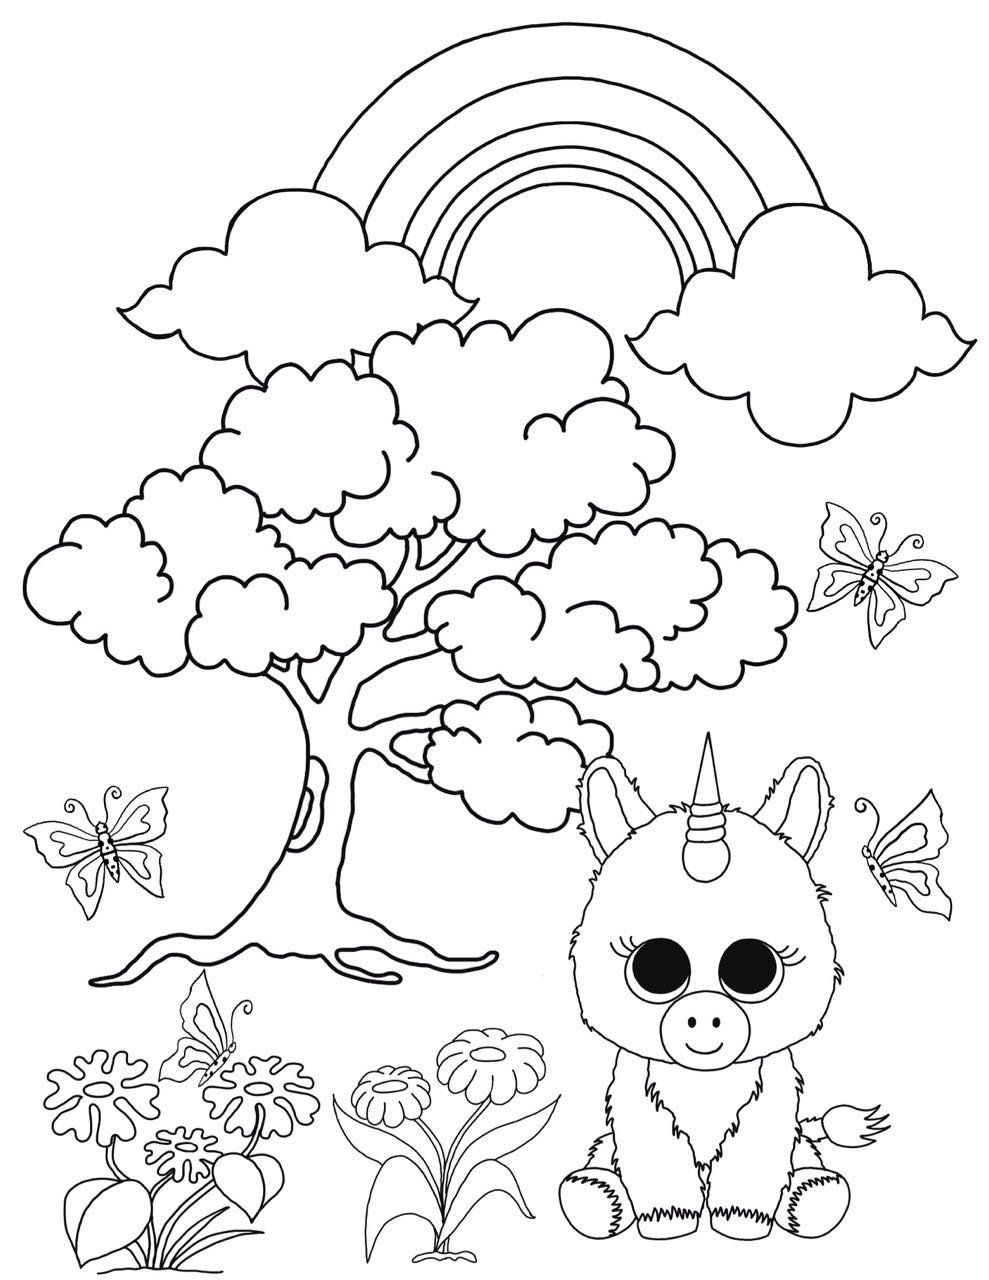 Beanie Boo Coloring Pages Inspirational Coloring Pages Dog To Color Printables Luxury Unicorn Unicorn Coloring Pages Dog Coloring Page Bear Coloring Pages